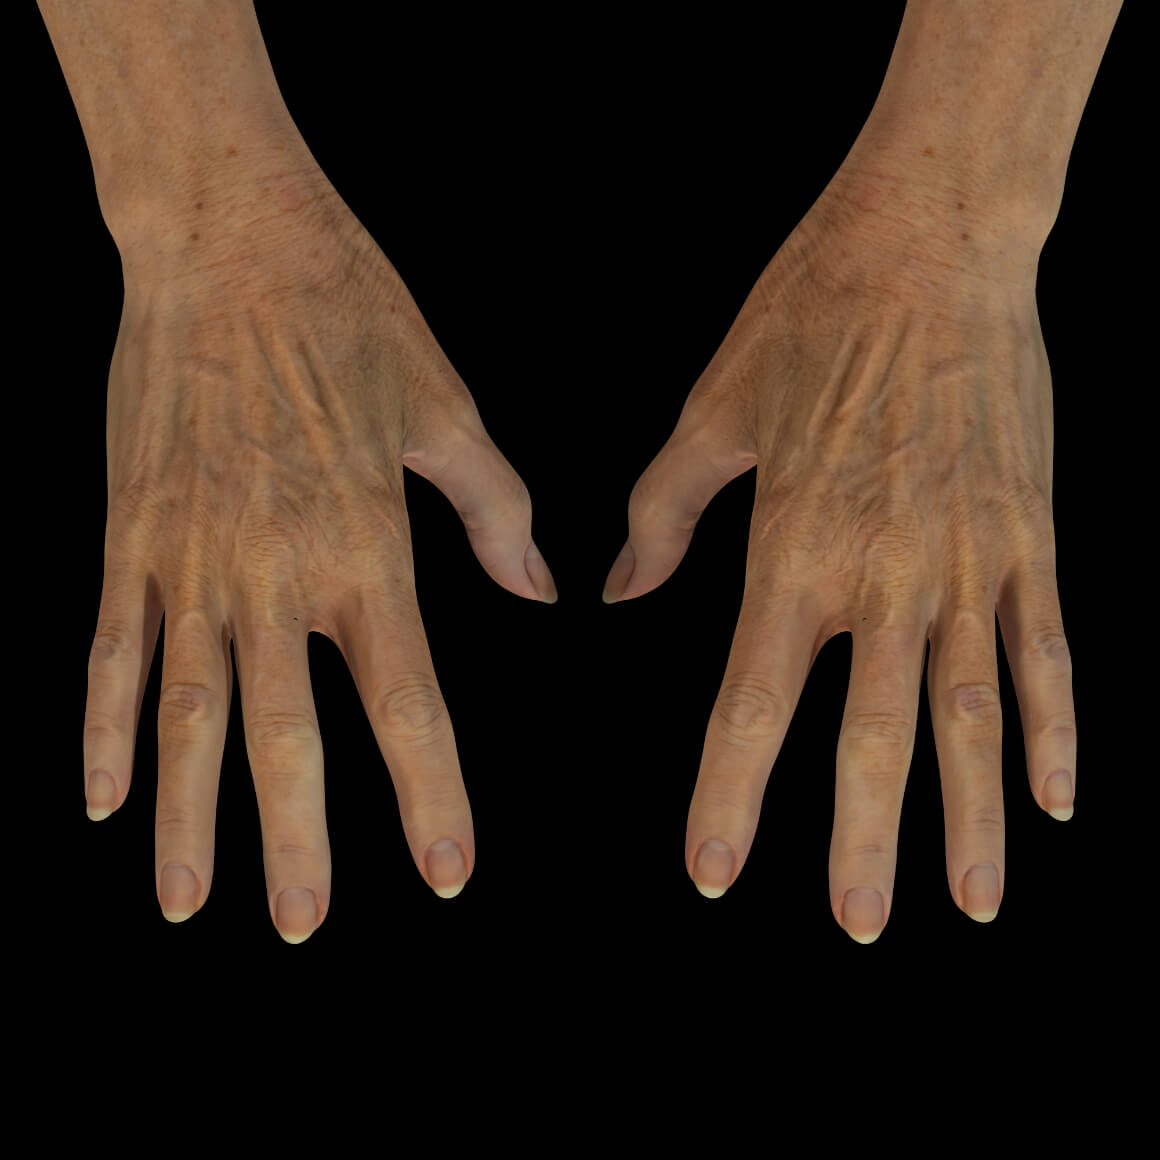 Hands of a Clinique Chloé female patient showing pigmented lesions, wrinkles and prominent tendons